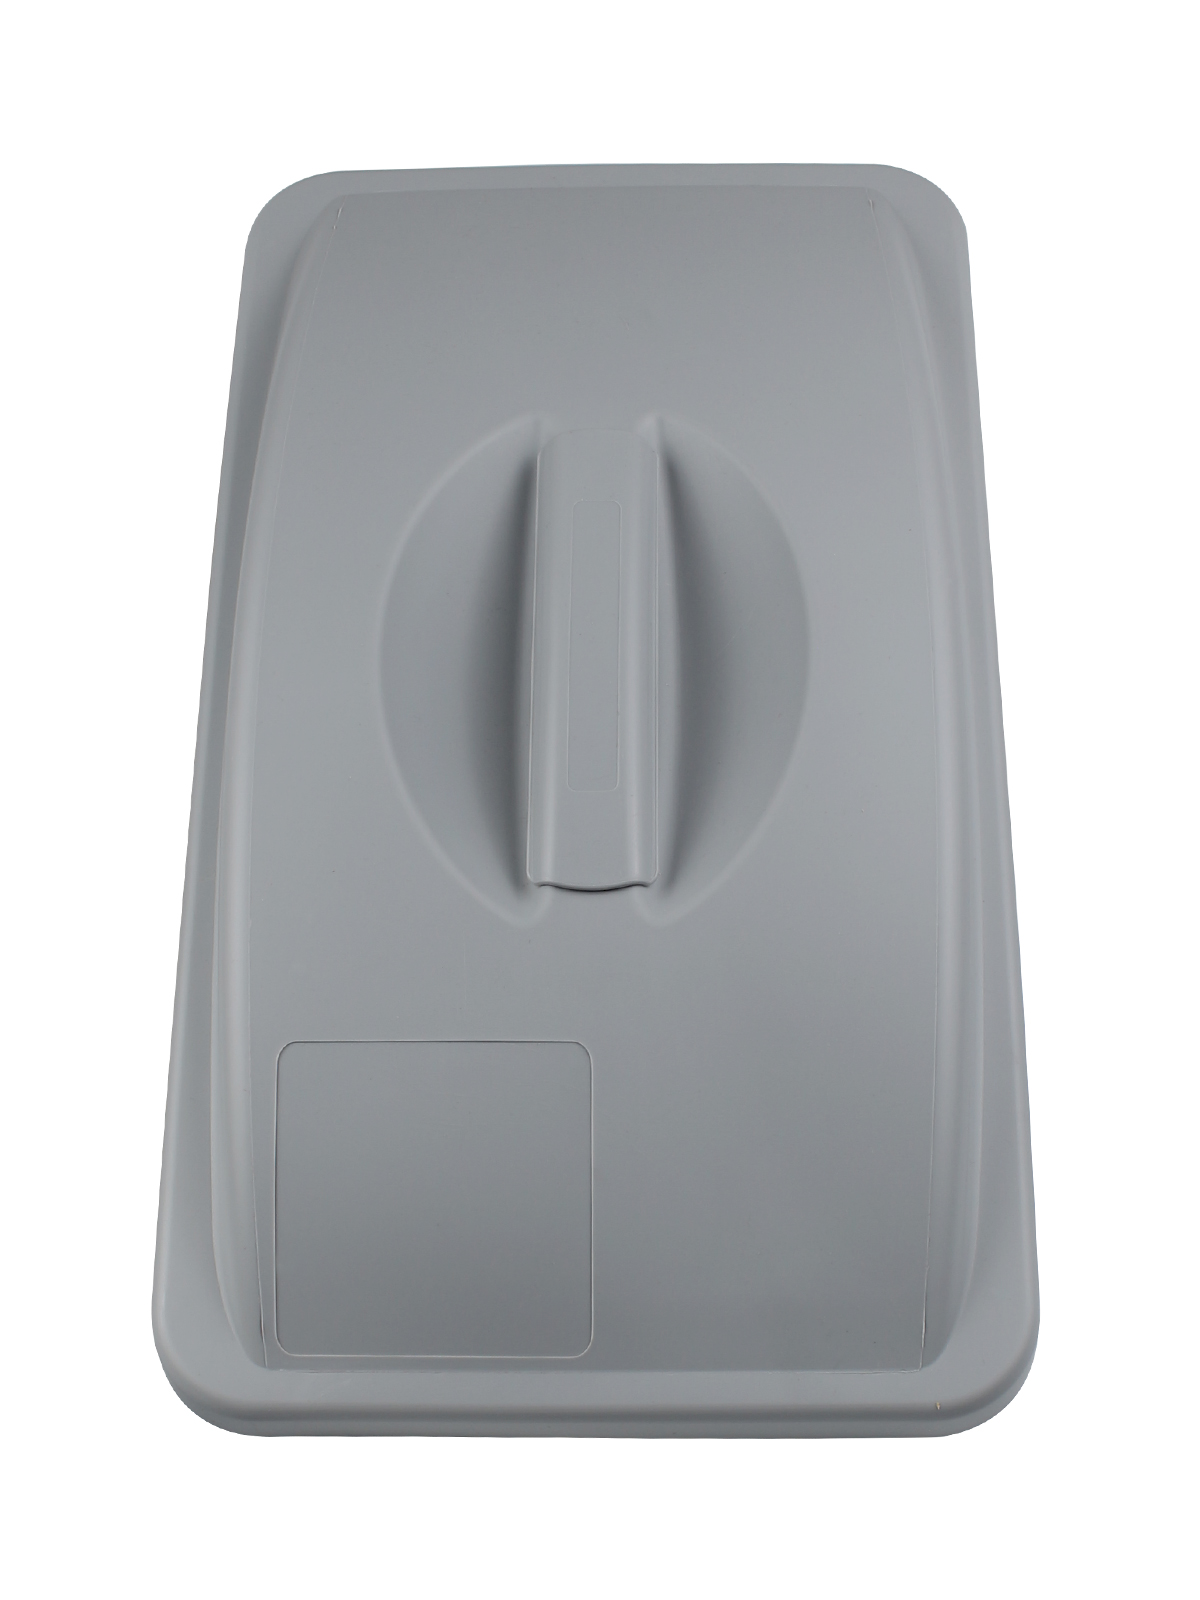 WASTE WATCHER - Single - Lid - Solid - Executive Grey